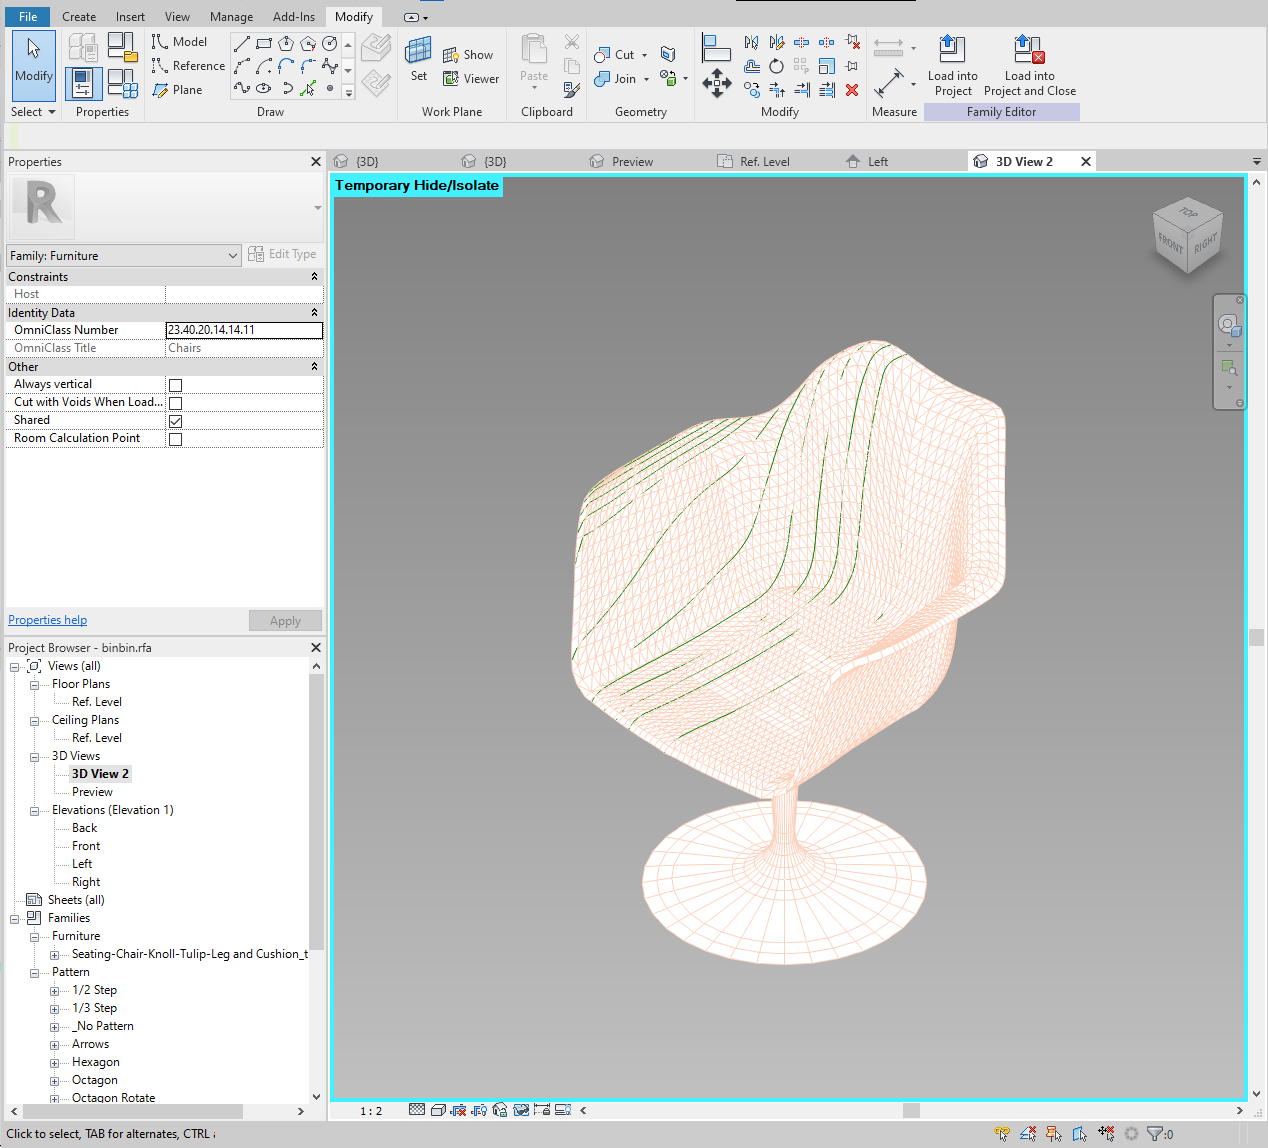 Image of the Revit family with all profiles created on one side.